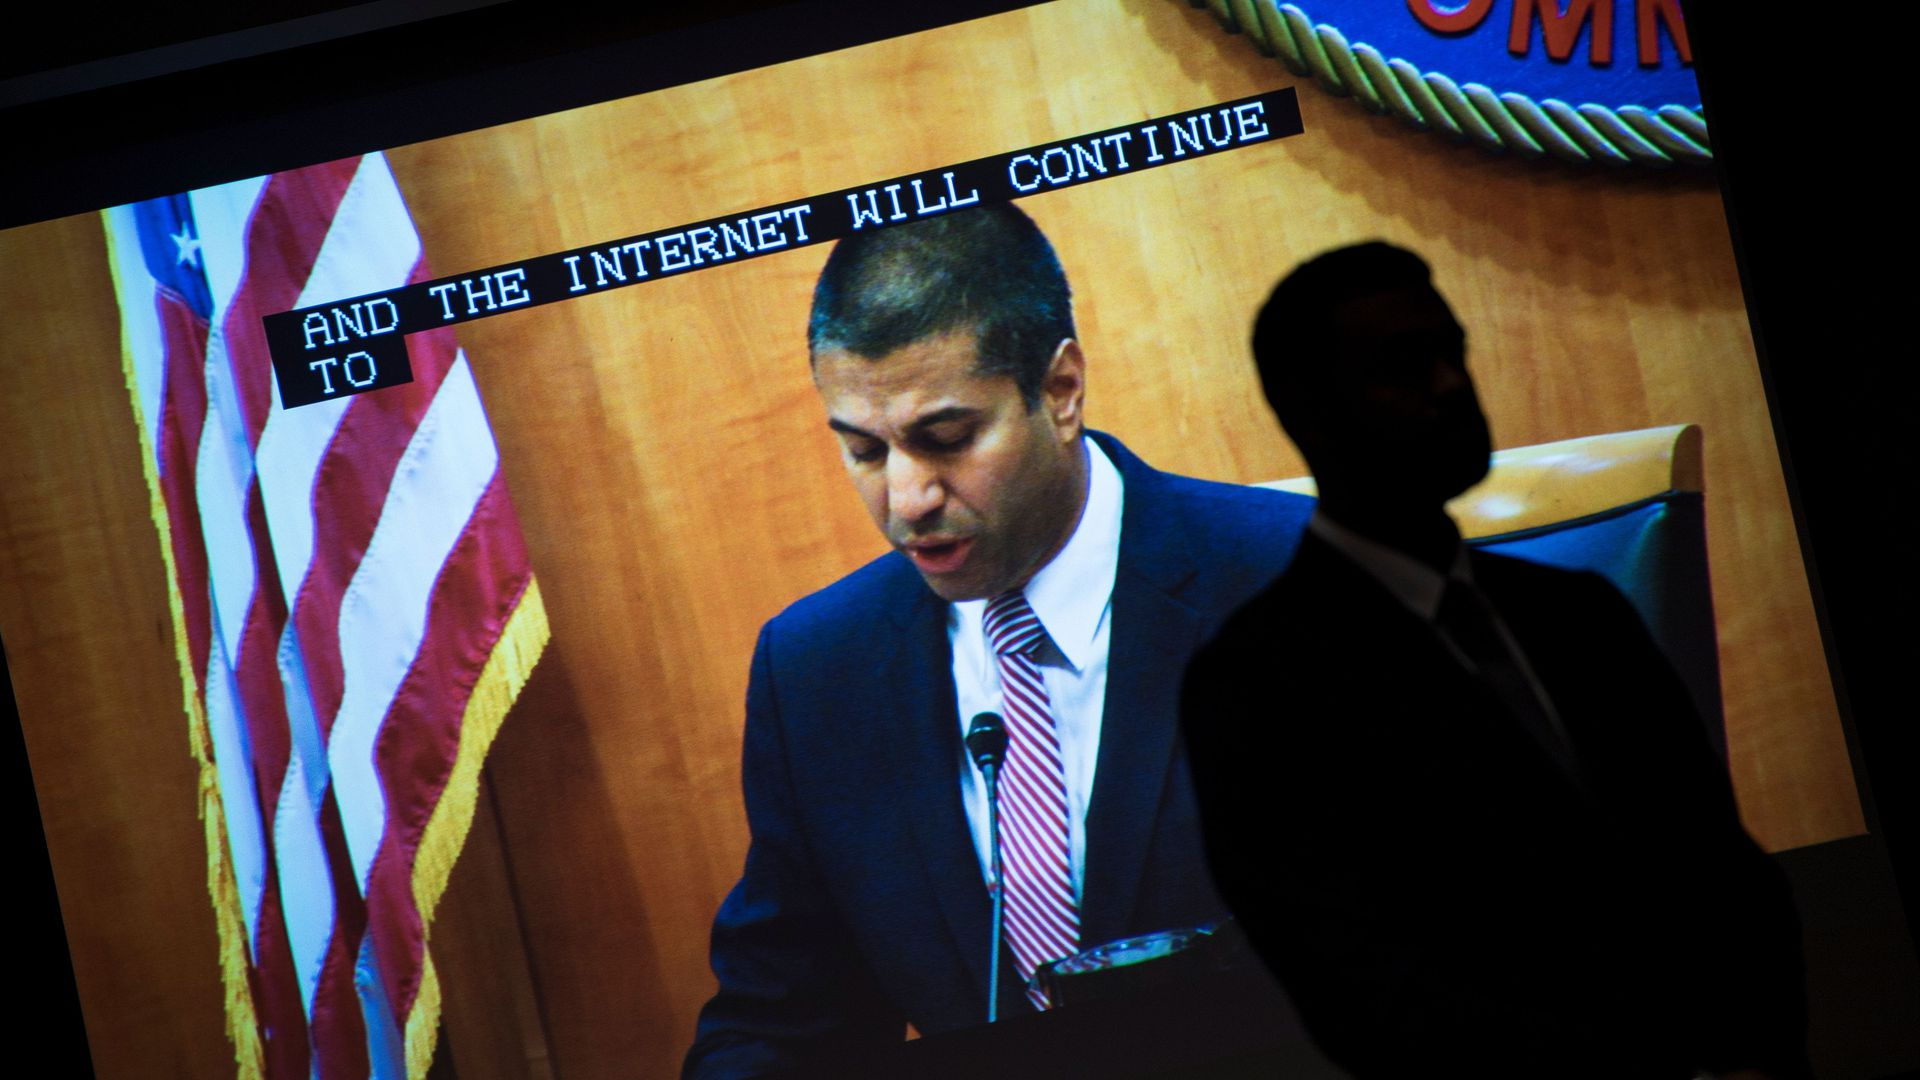 FCC Chairman Ajit Pai is shown on a screen at the agency